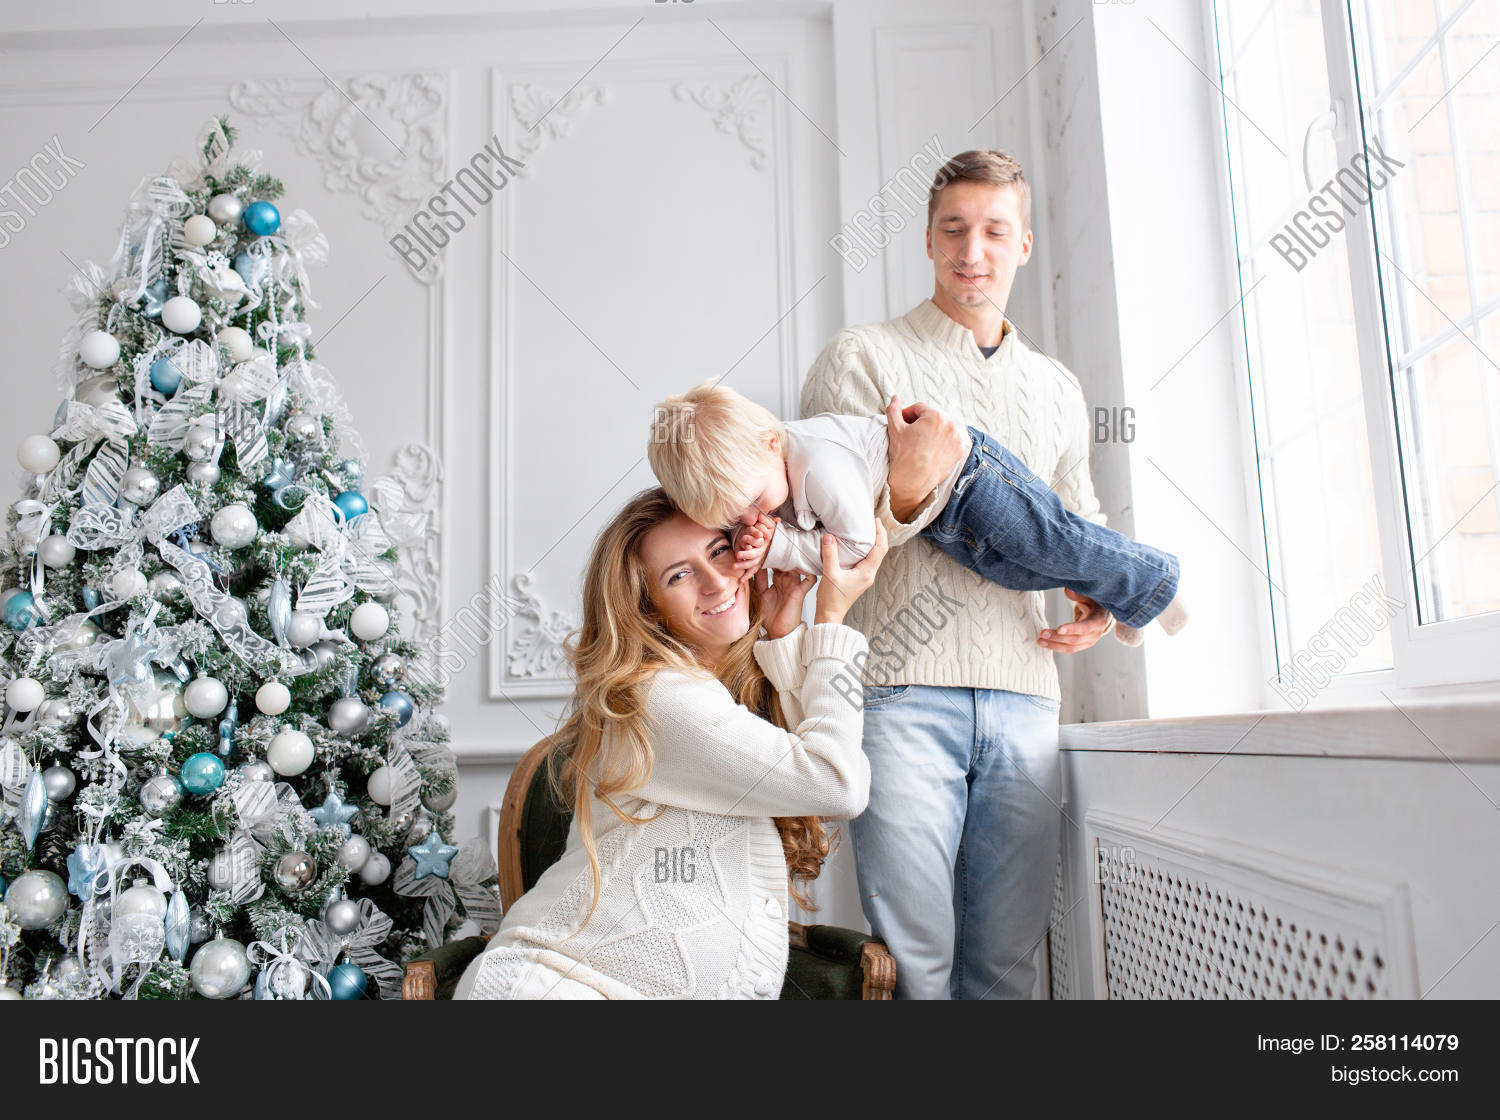 Happy Family Having Fun At Home. Christmas Morning In Bright Living Room. Young Parents  sc 1 th 194 & Happy Family Having Image \u0026 Photo (Free Trial) | Bigstock